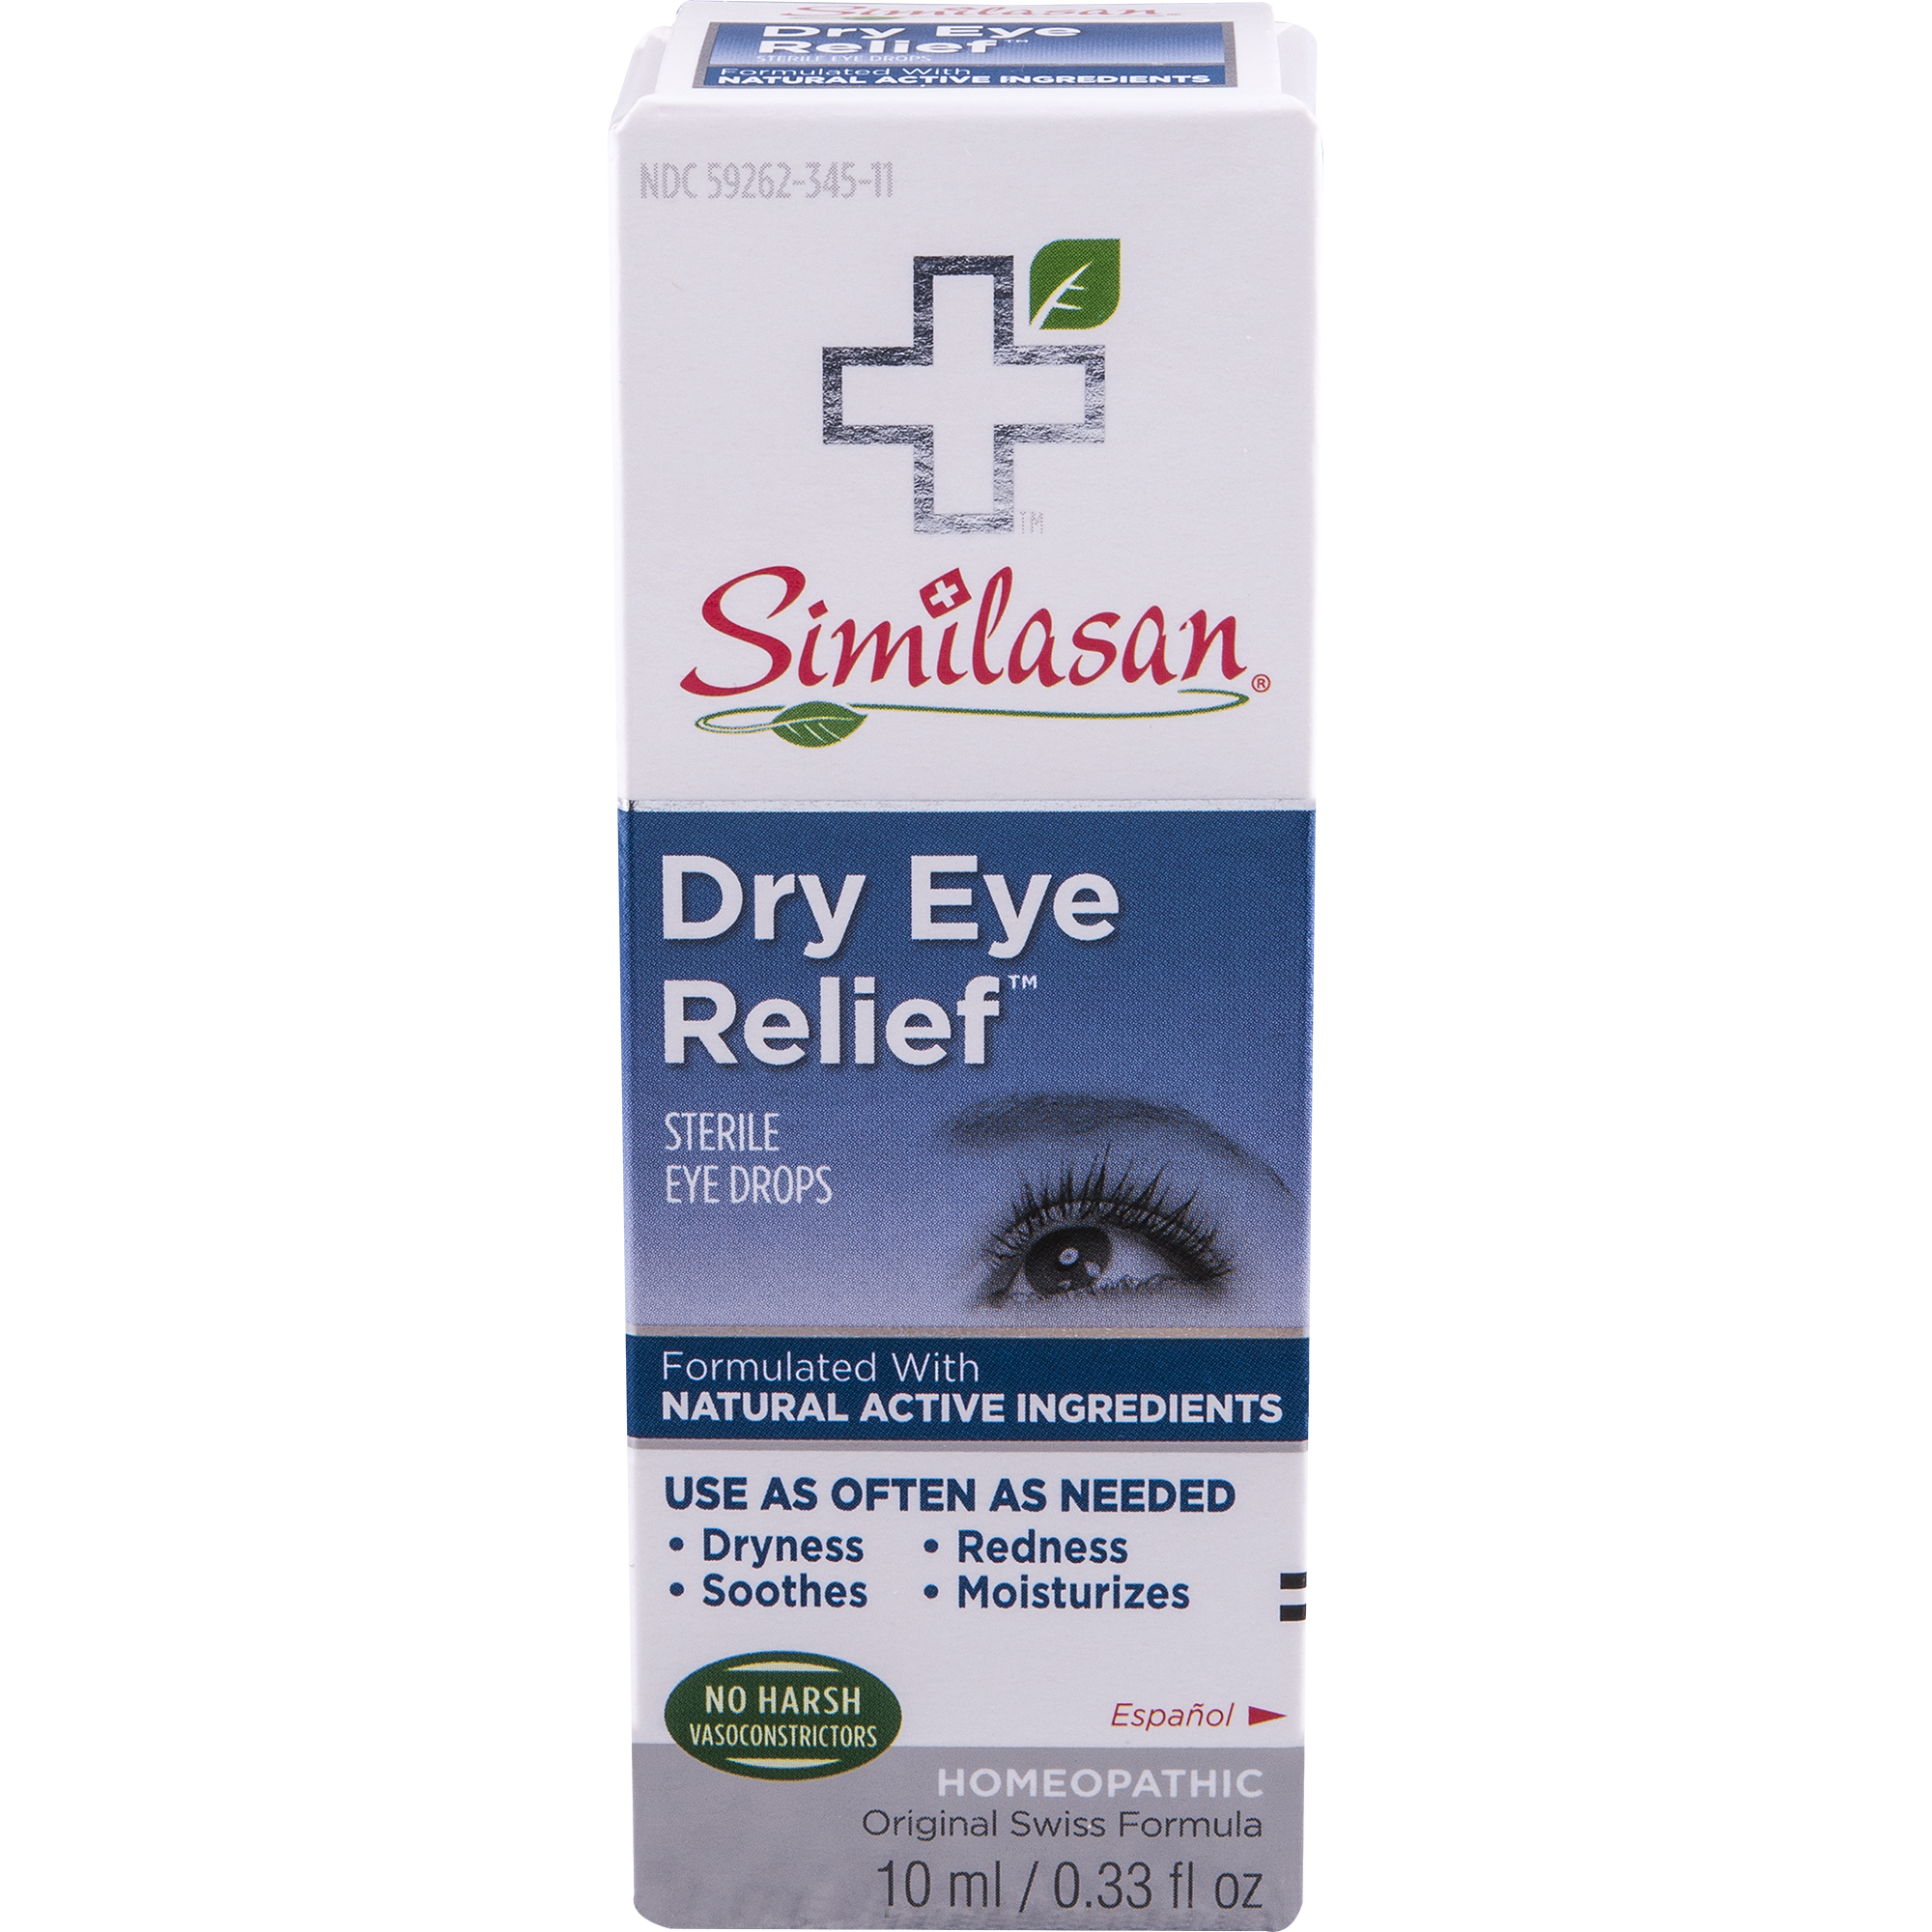 Similasan Dry Eye Relief Sterile Eye Drops, 0.33 FL OZ